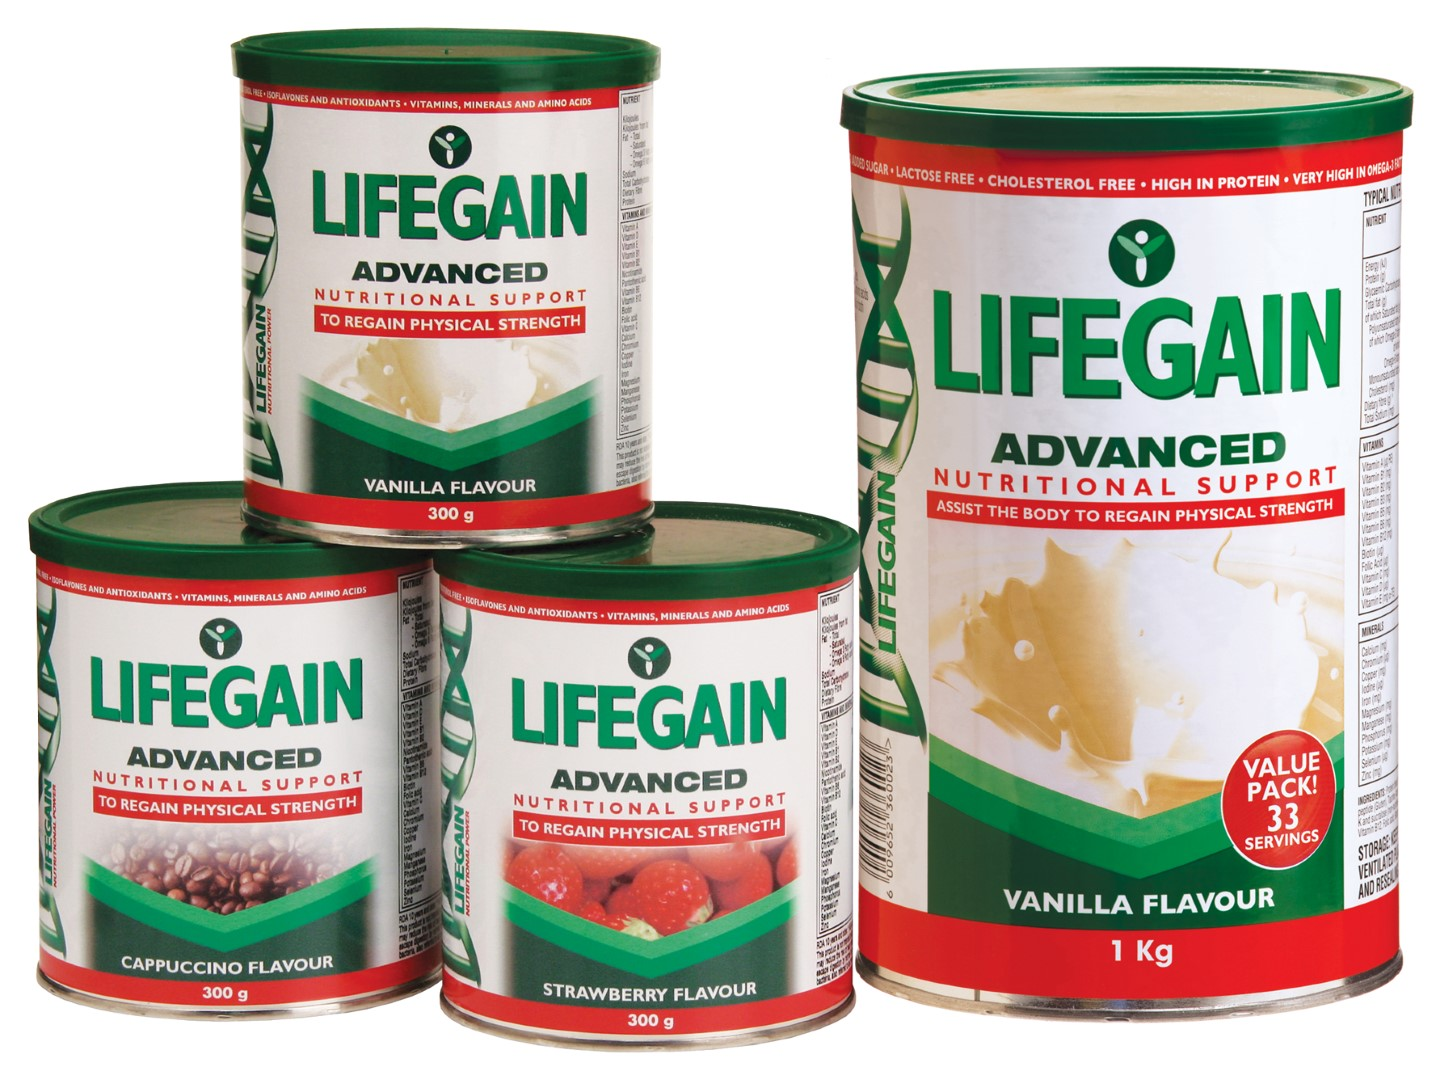 Win 1 of 5 Lifegain hampers valued at R505